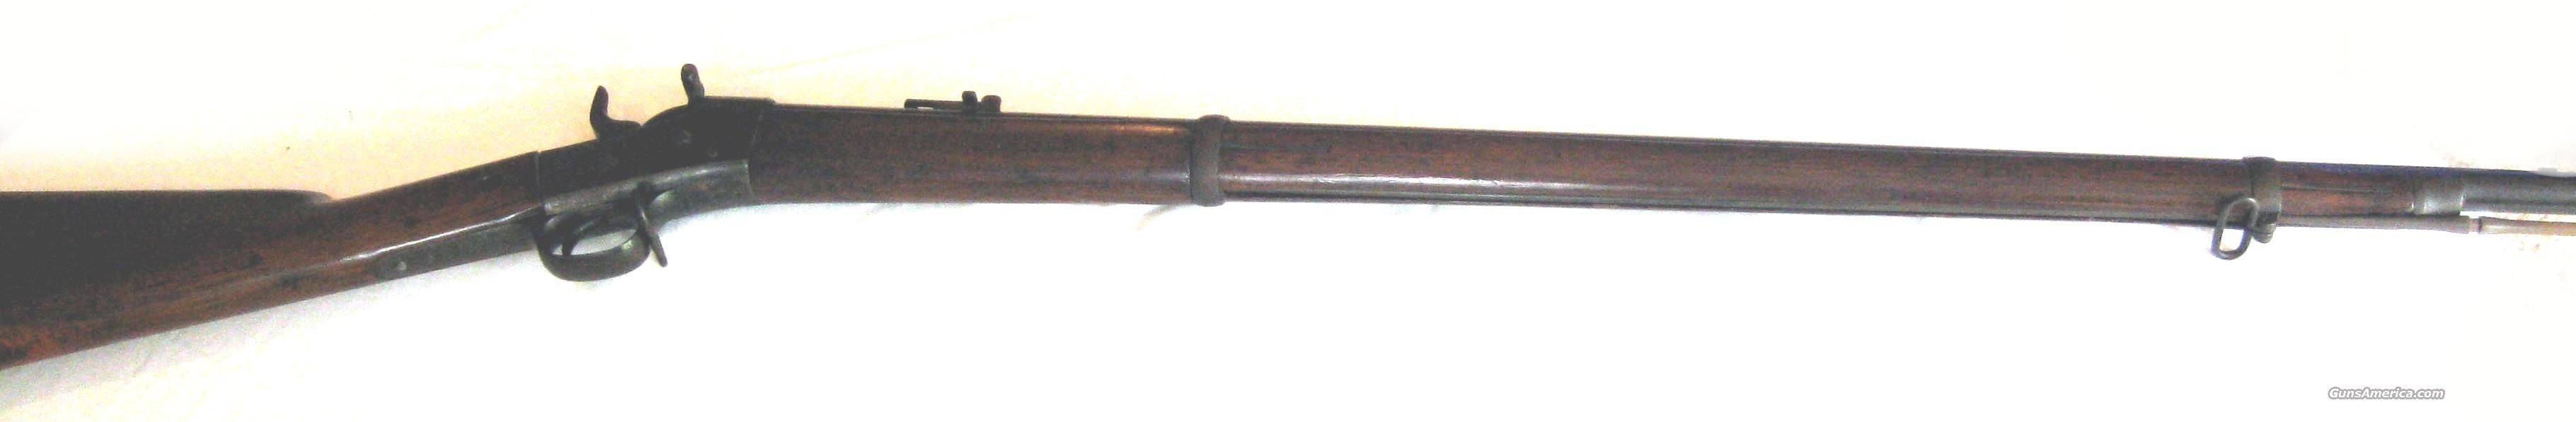 Springfield 1872 50.70 Caliber Rolling Block  Guns > Rifles > United States Patent Firearms Rifles